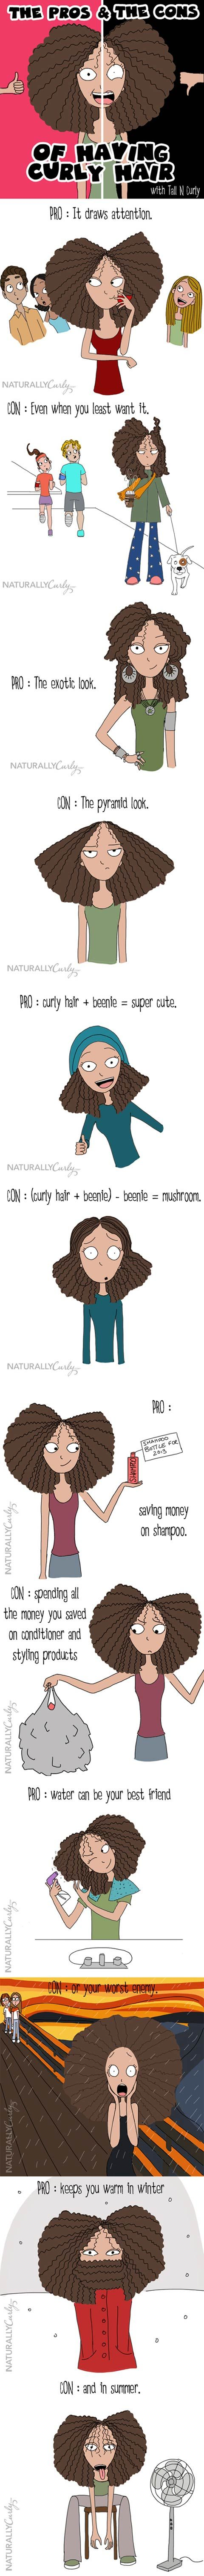 The Pros and Cons of Having Curly Hair. @Elyse Exposito Exposito Garverick XD: